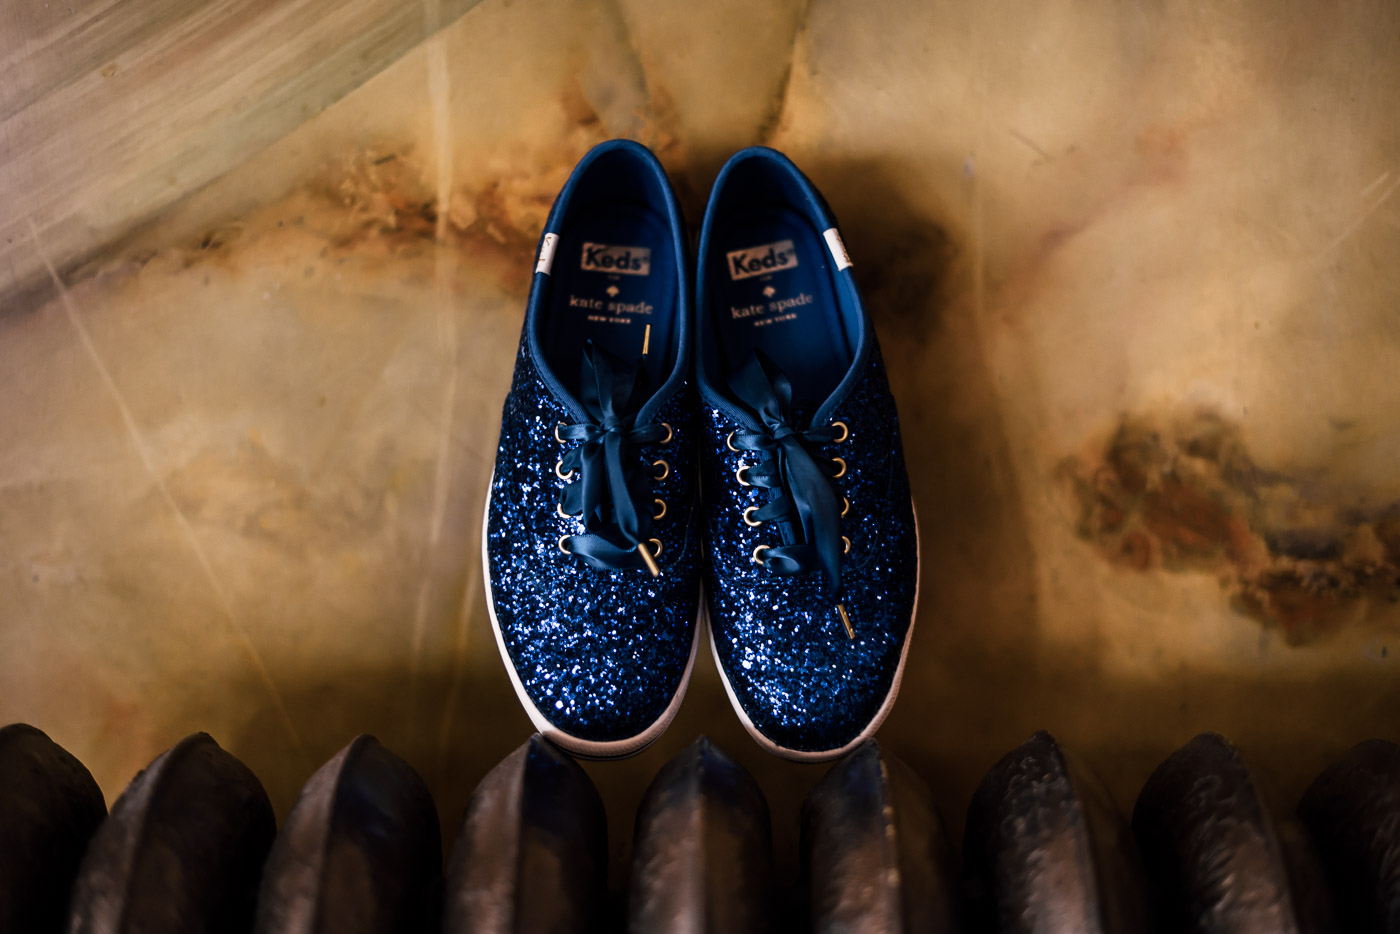 Bride choses Blue sparkle Kate Spade Keds for her wedding reception shoes.